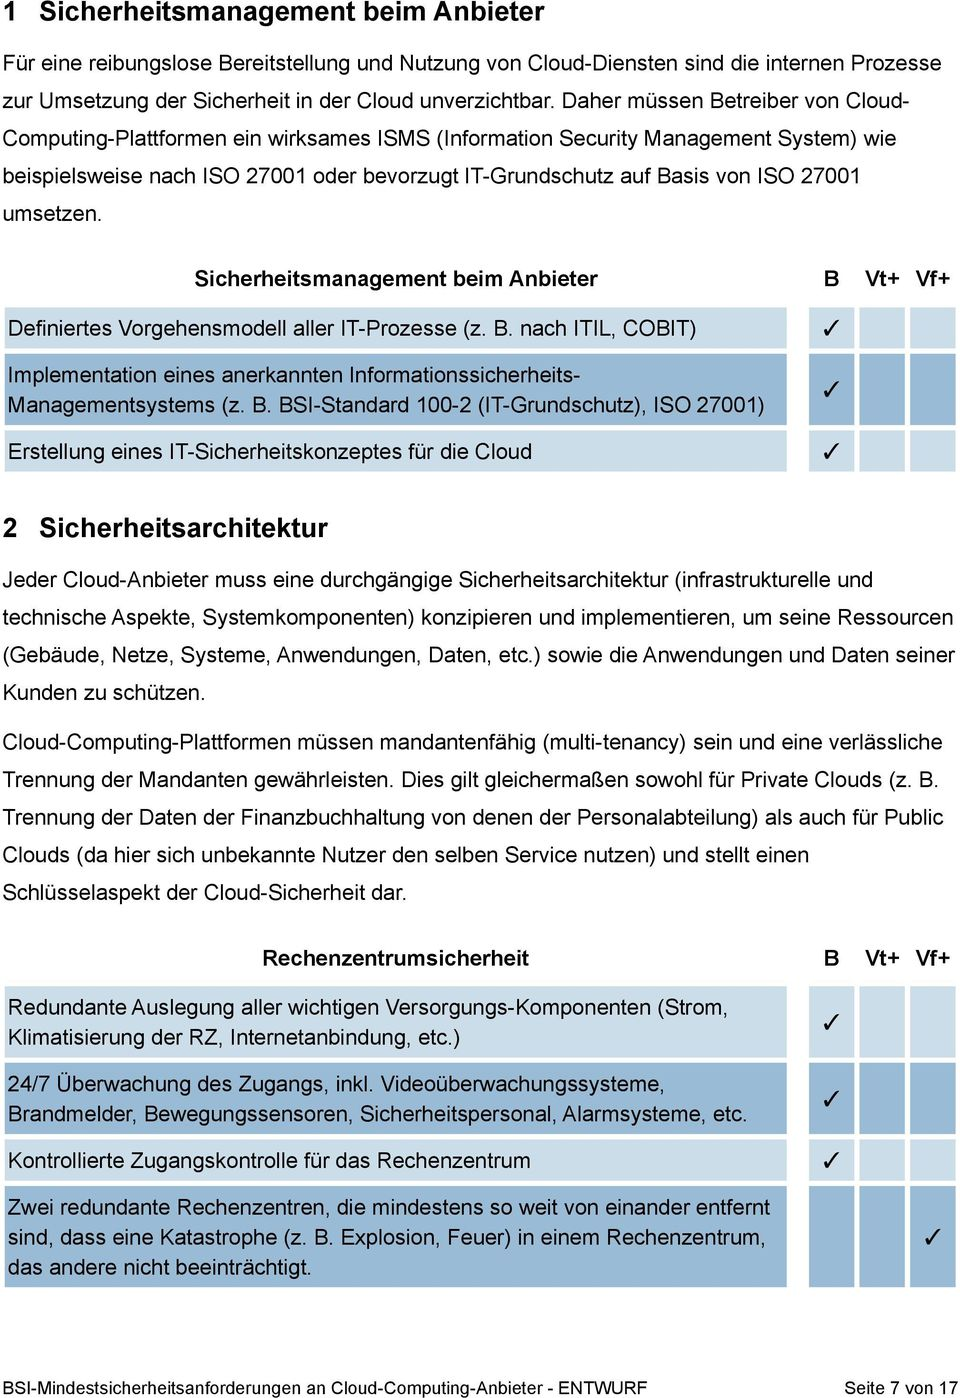 27001 umsetzen. Sicherheitsmanagement beim Anbieter B Vt+ Vf+ Definiertes Vorgehensmodell aller IT-Prozesse (z. B. nach ITIL, COBIT) Implementation eines anerkannten Informationssicherheits- Managementsystems (z.